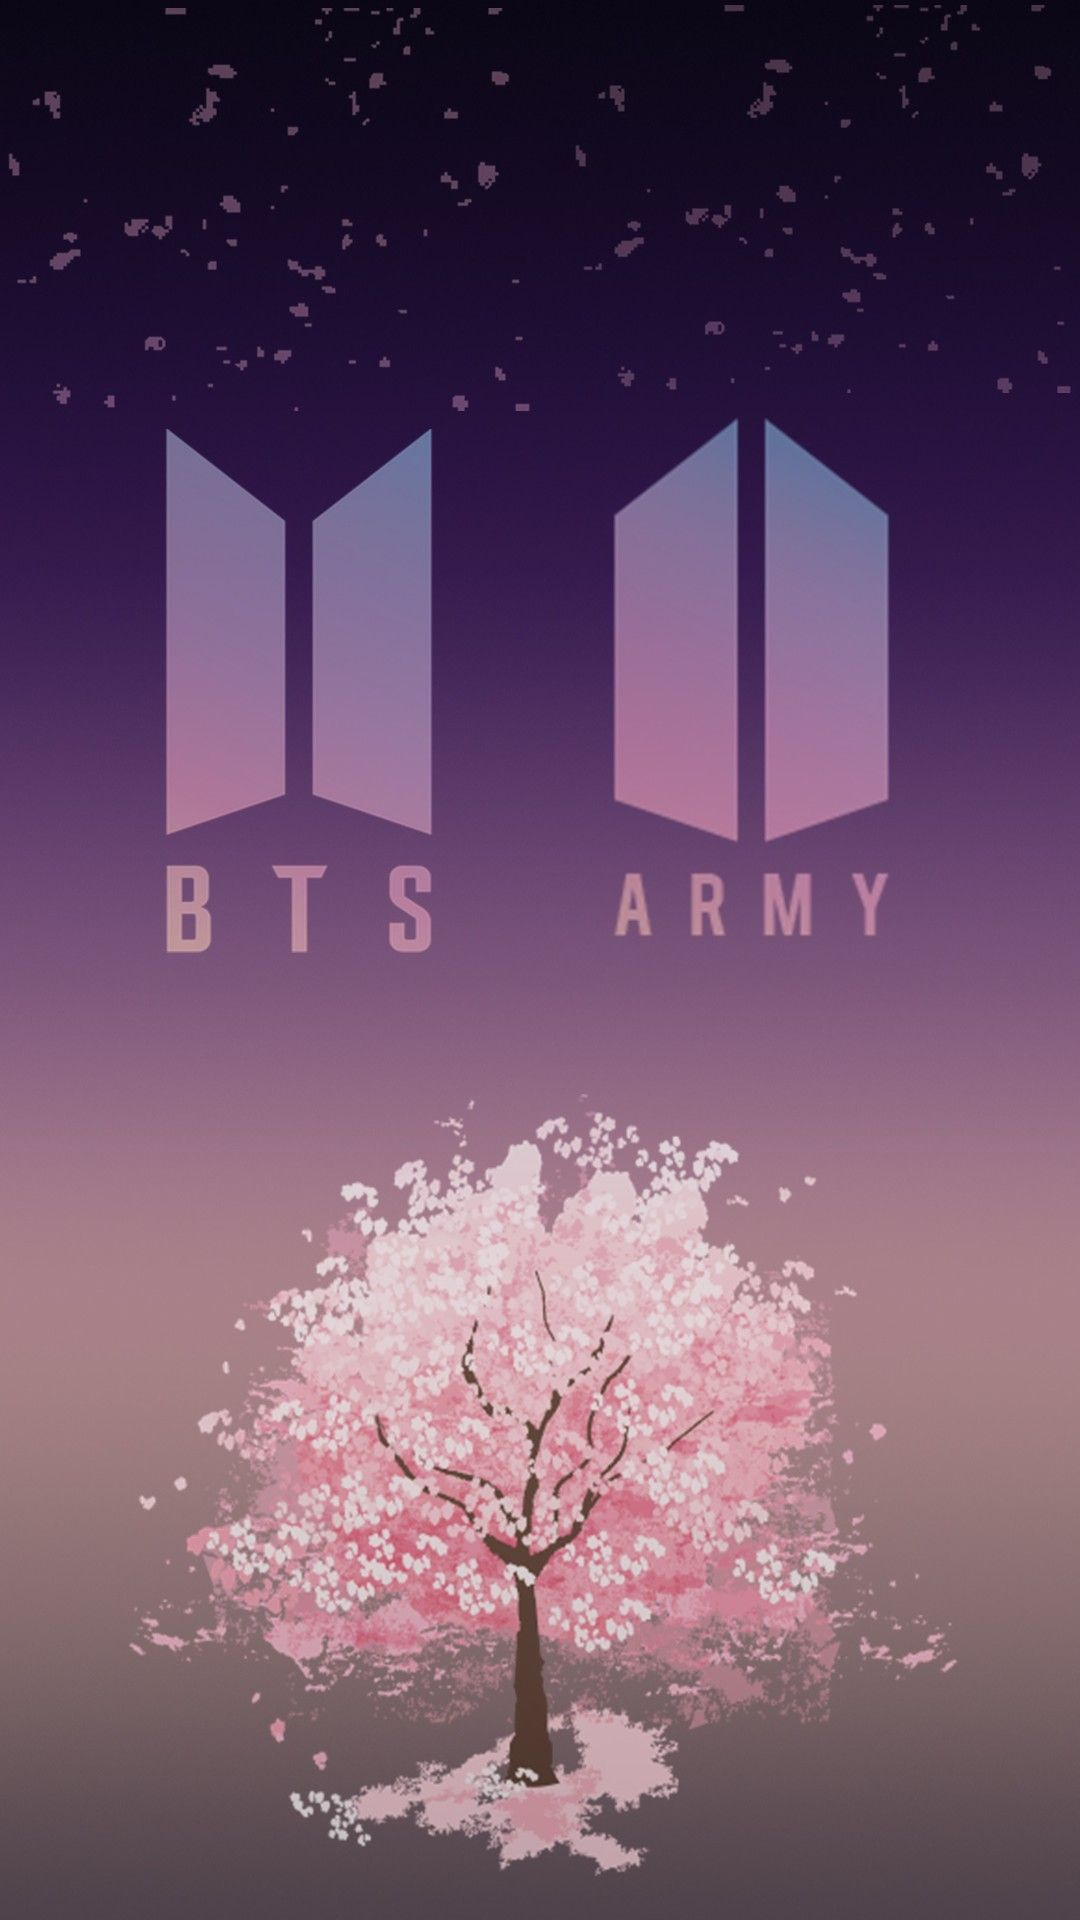 Iphone Army Wallpapers Hd From Pin It Bts Wallpaper Army Wallpaper Bts Army